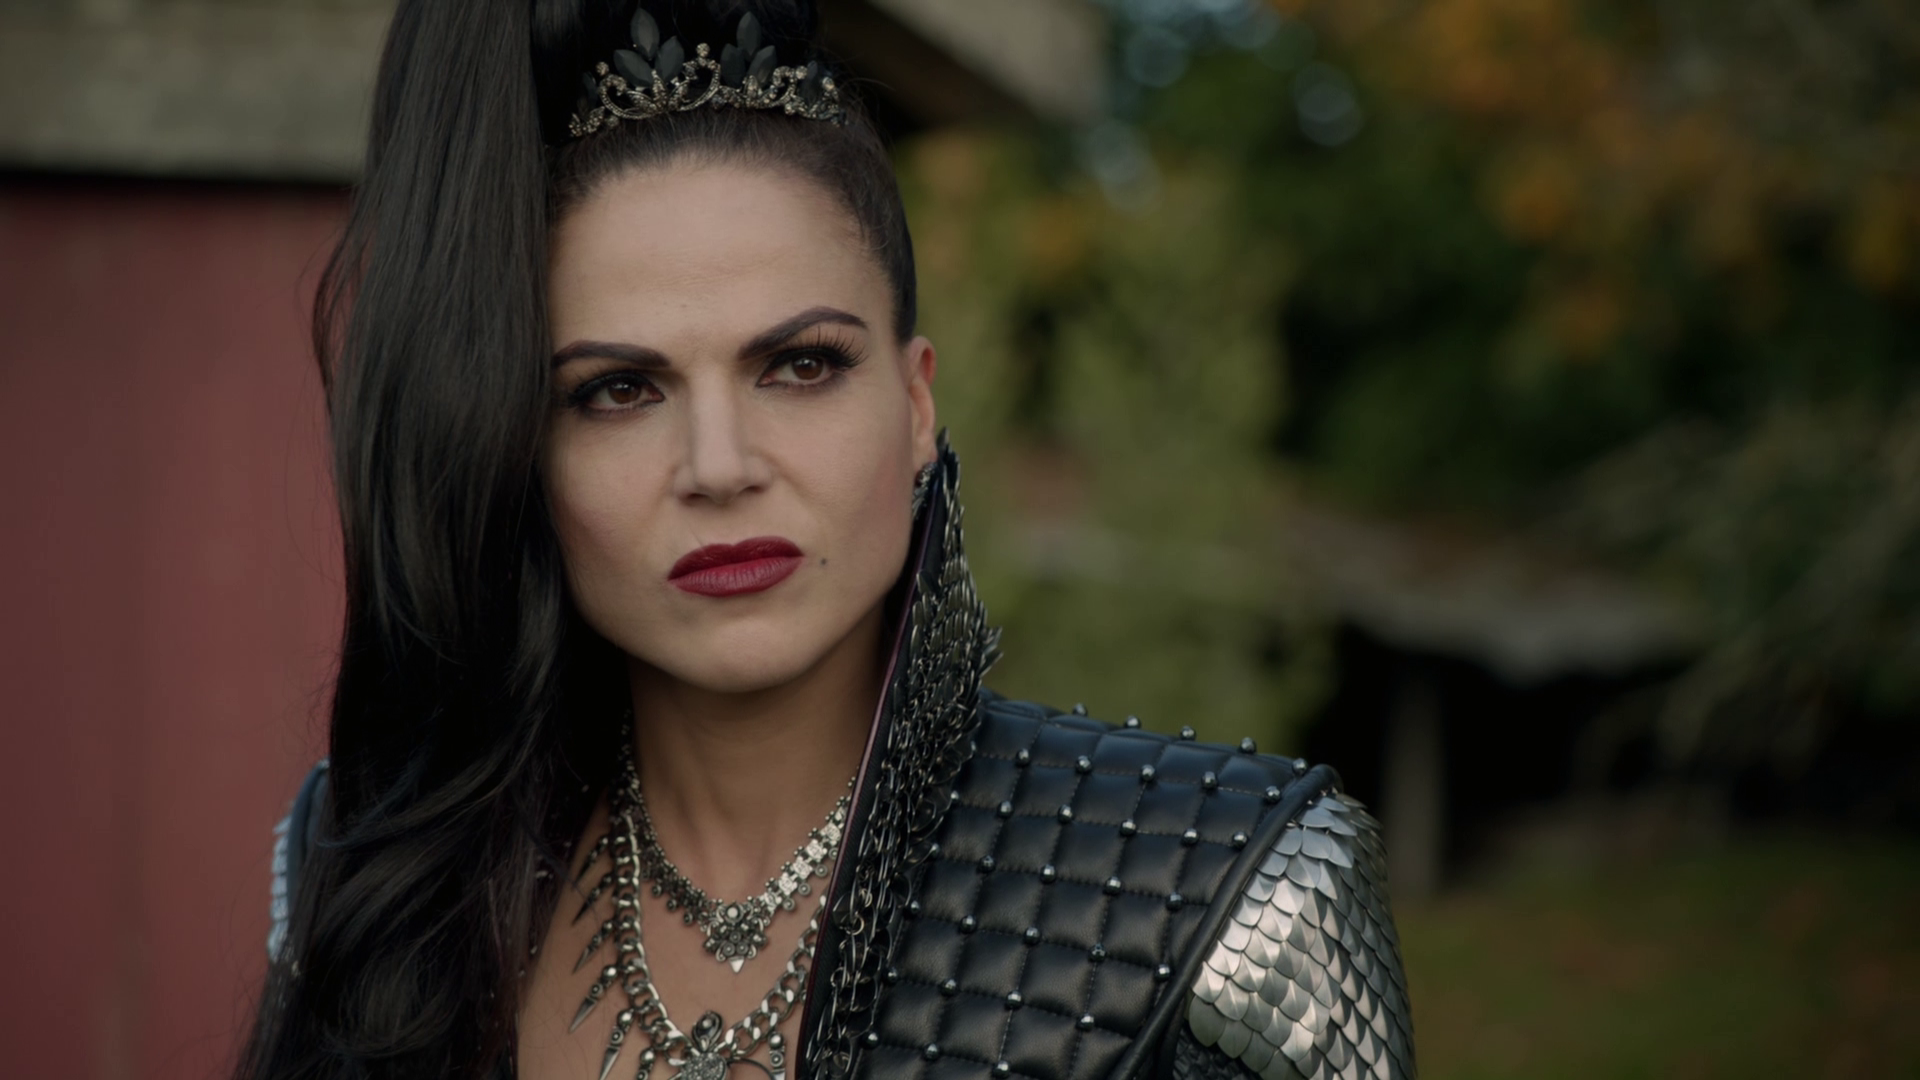 Evil Queen | Once Upon a Time Wiki | FANDOM powered by Wikia